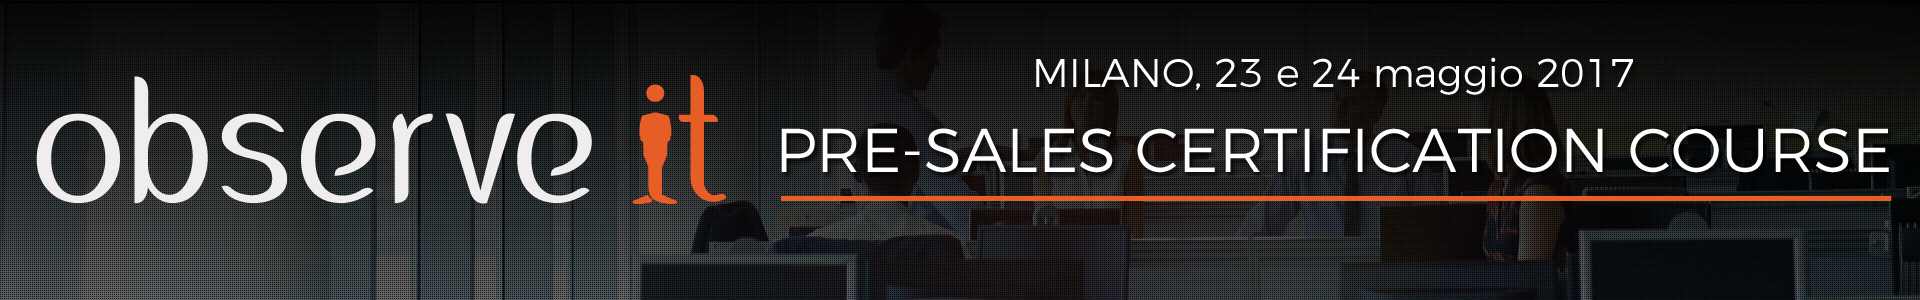 ObserveIT Pre-Sales Certification Course